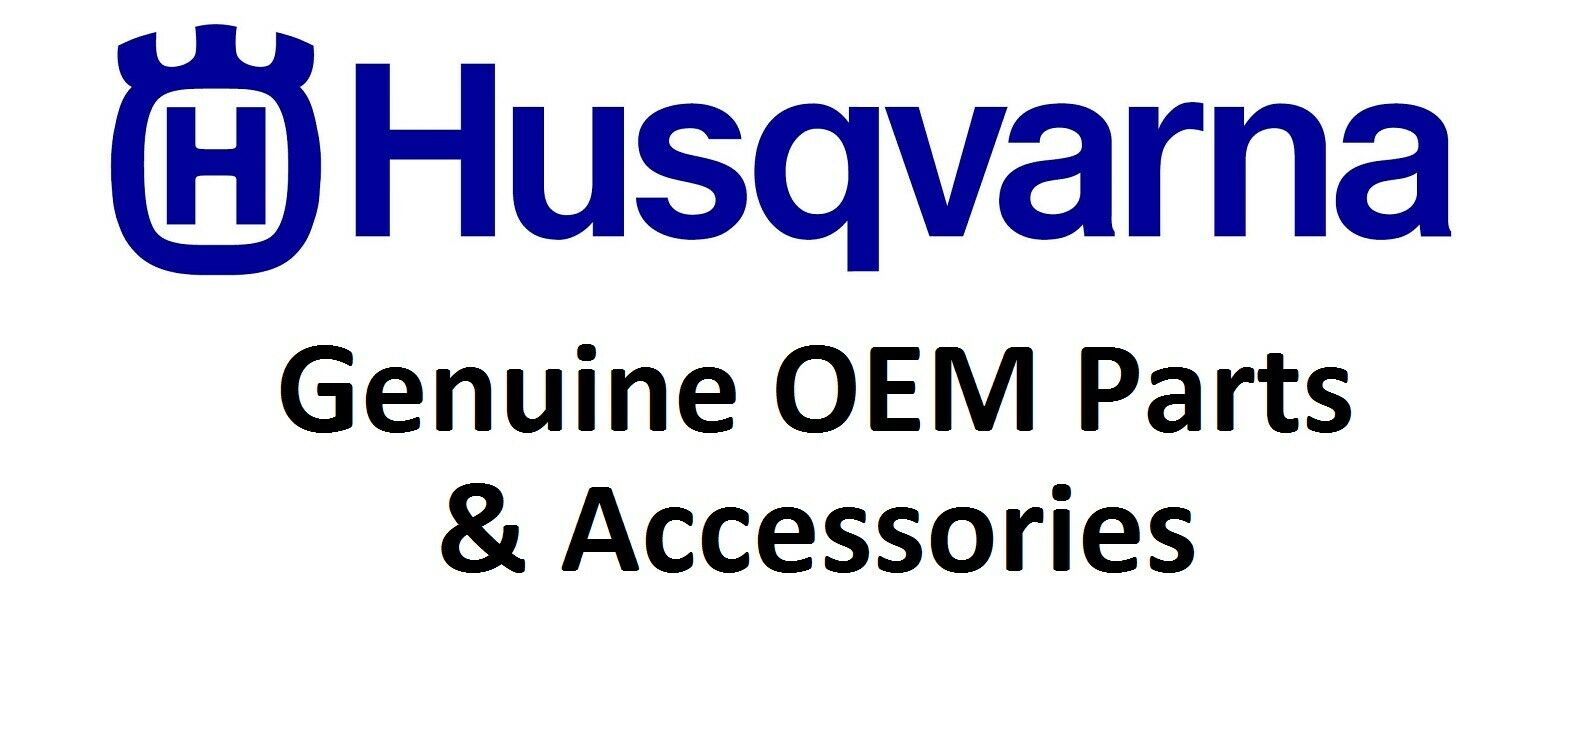 Genuine Husqvarna 532008353 Shift Fork TI Fits Poulan Pro McCulloch Weedeater